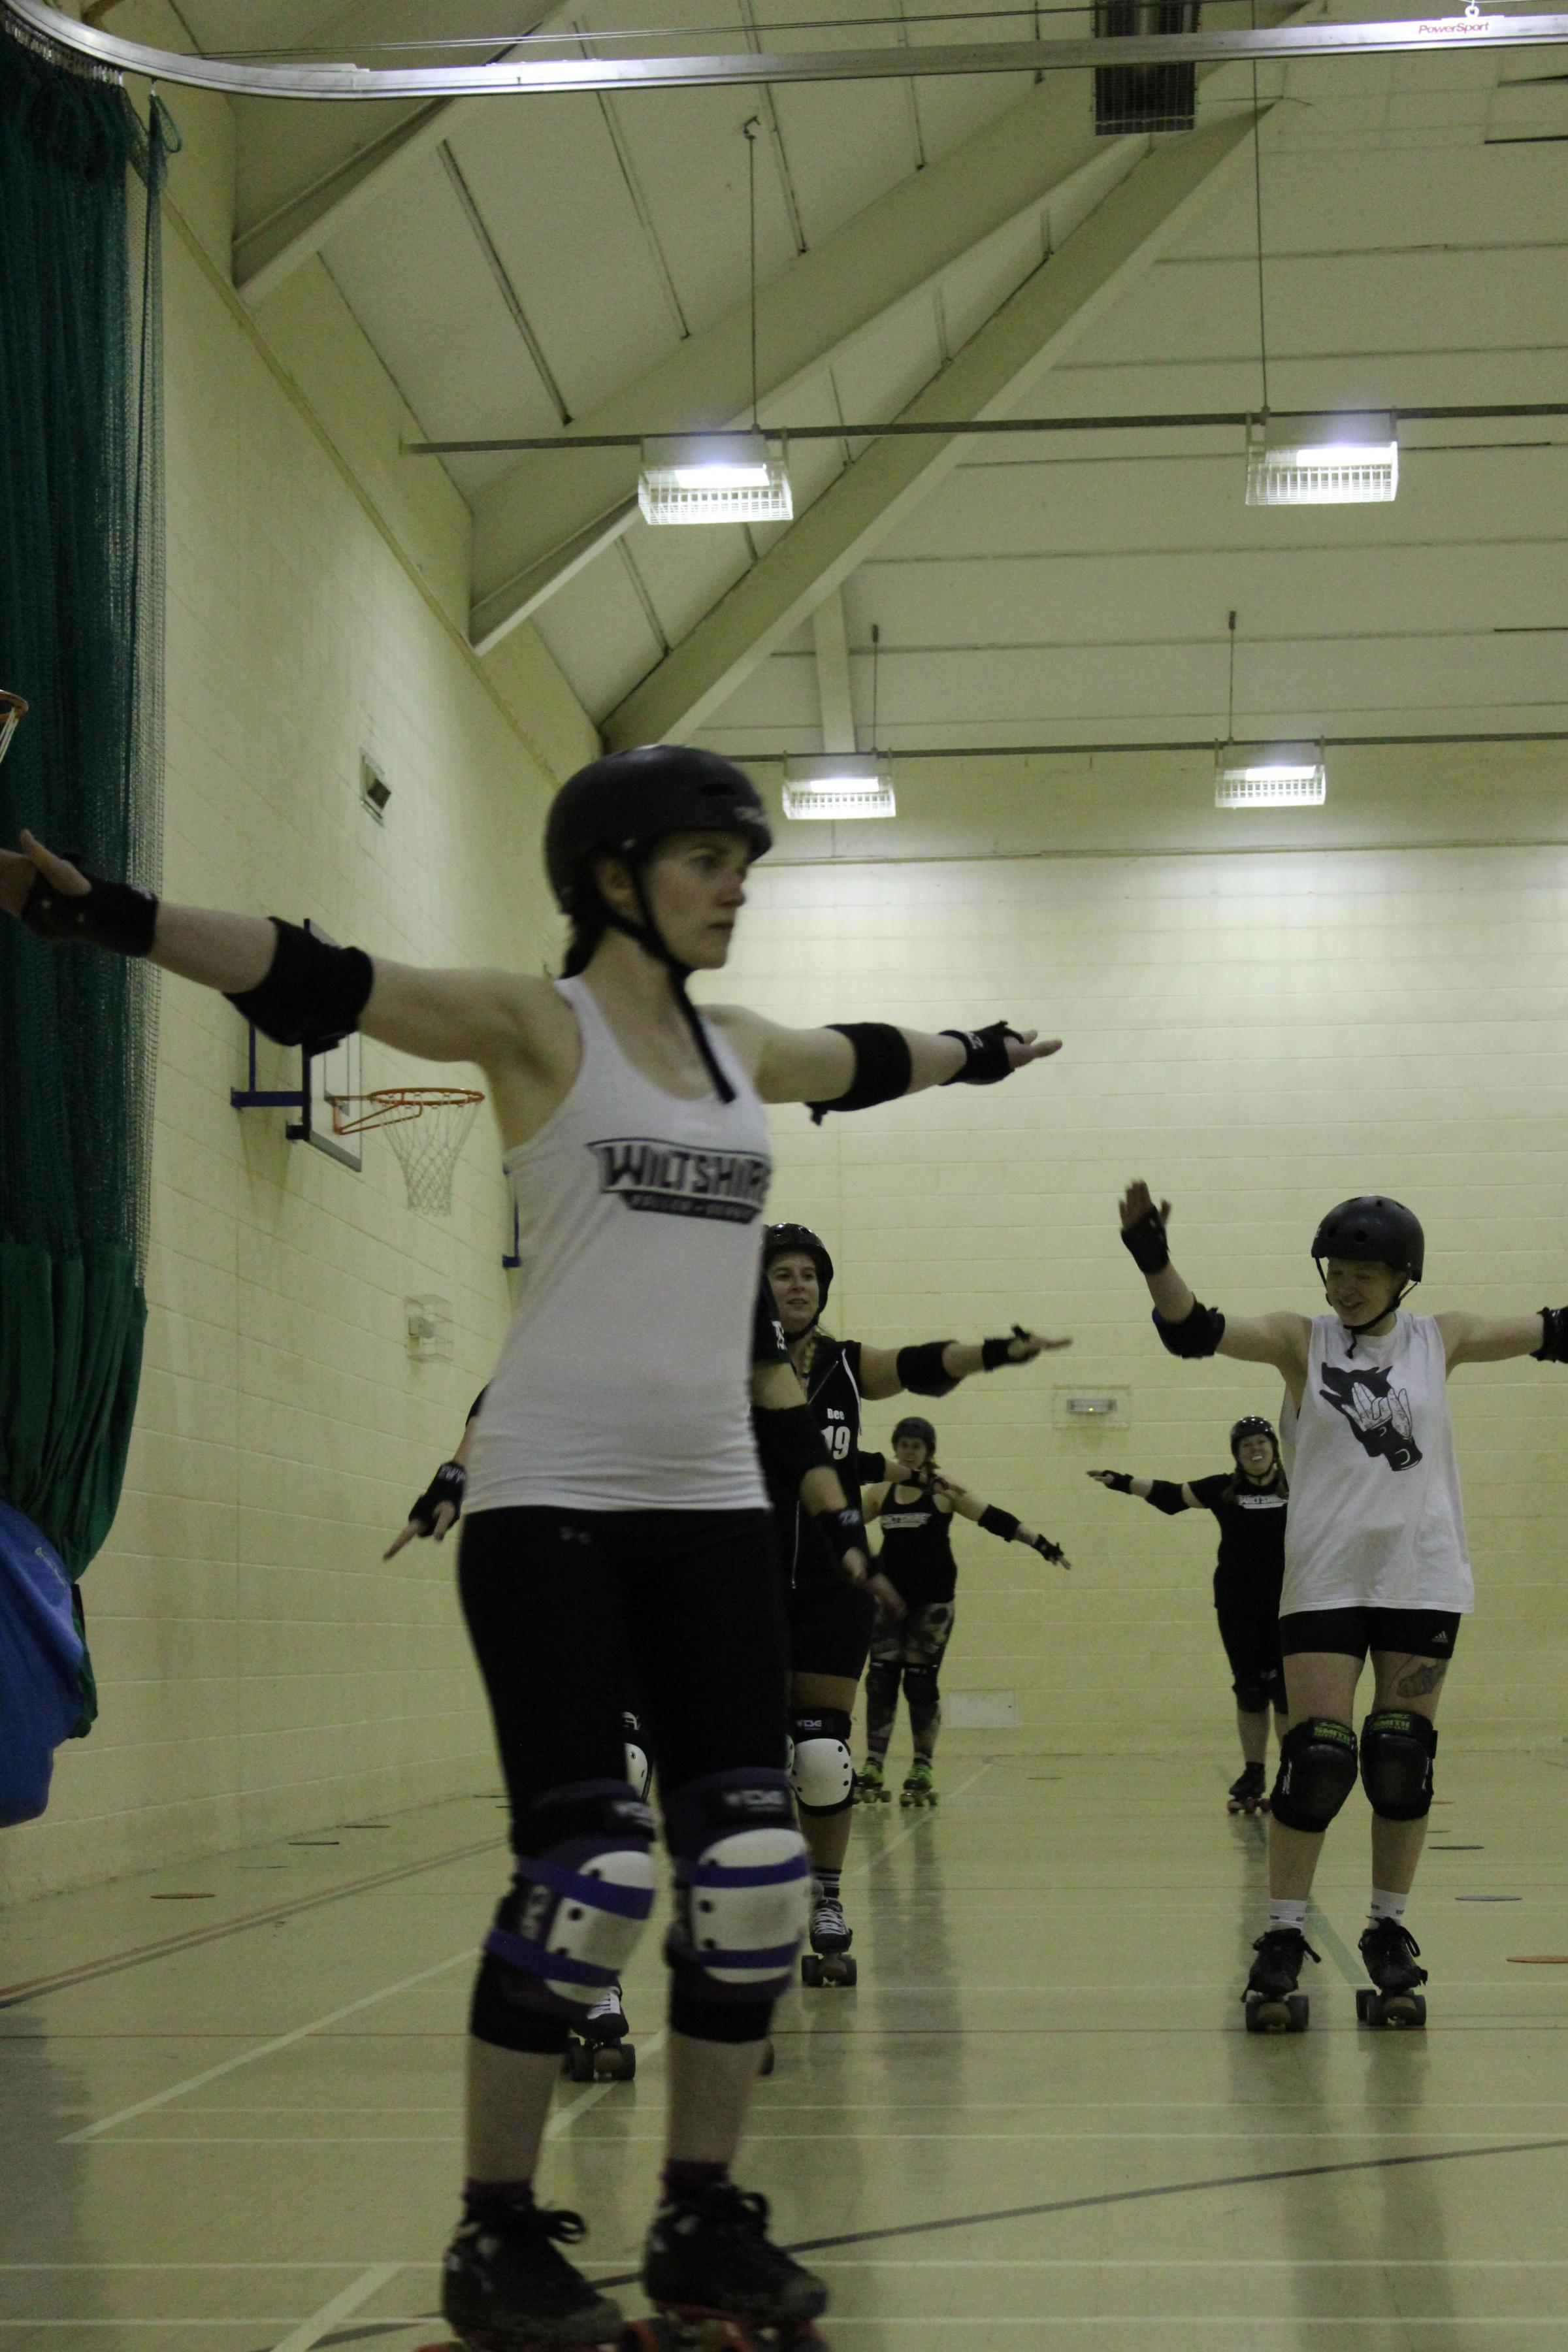 Everything you need to know about Wiltshire Roller Derby